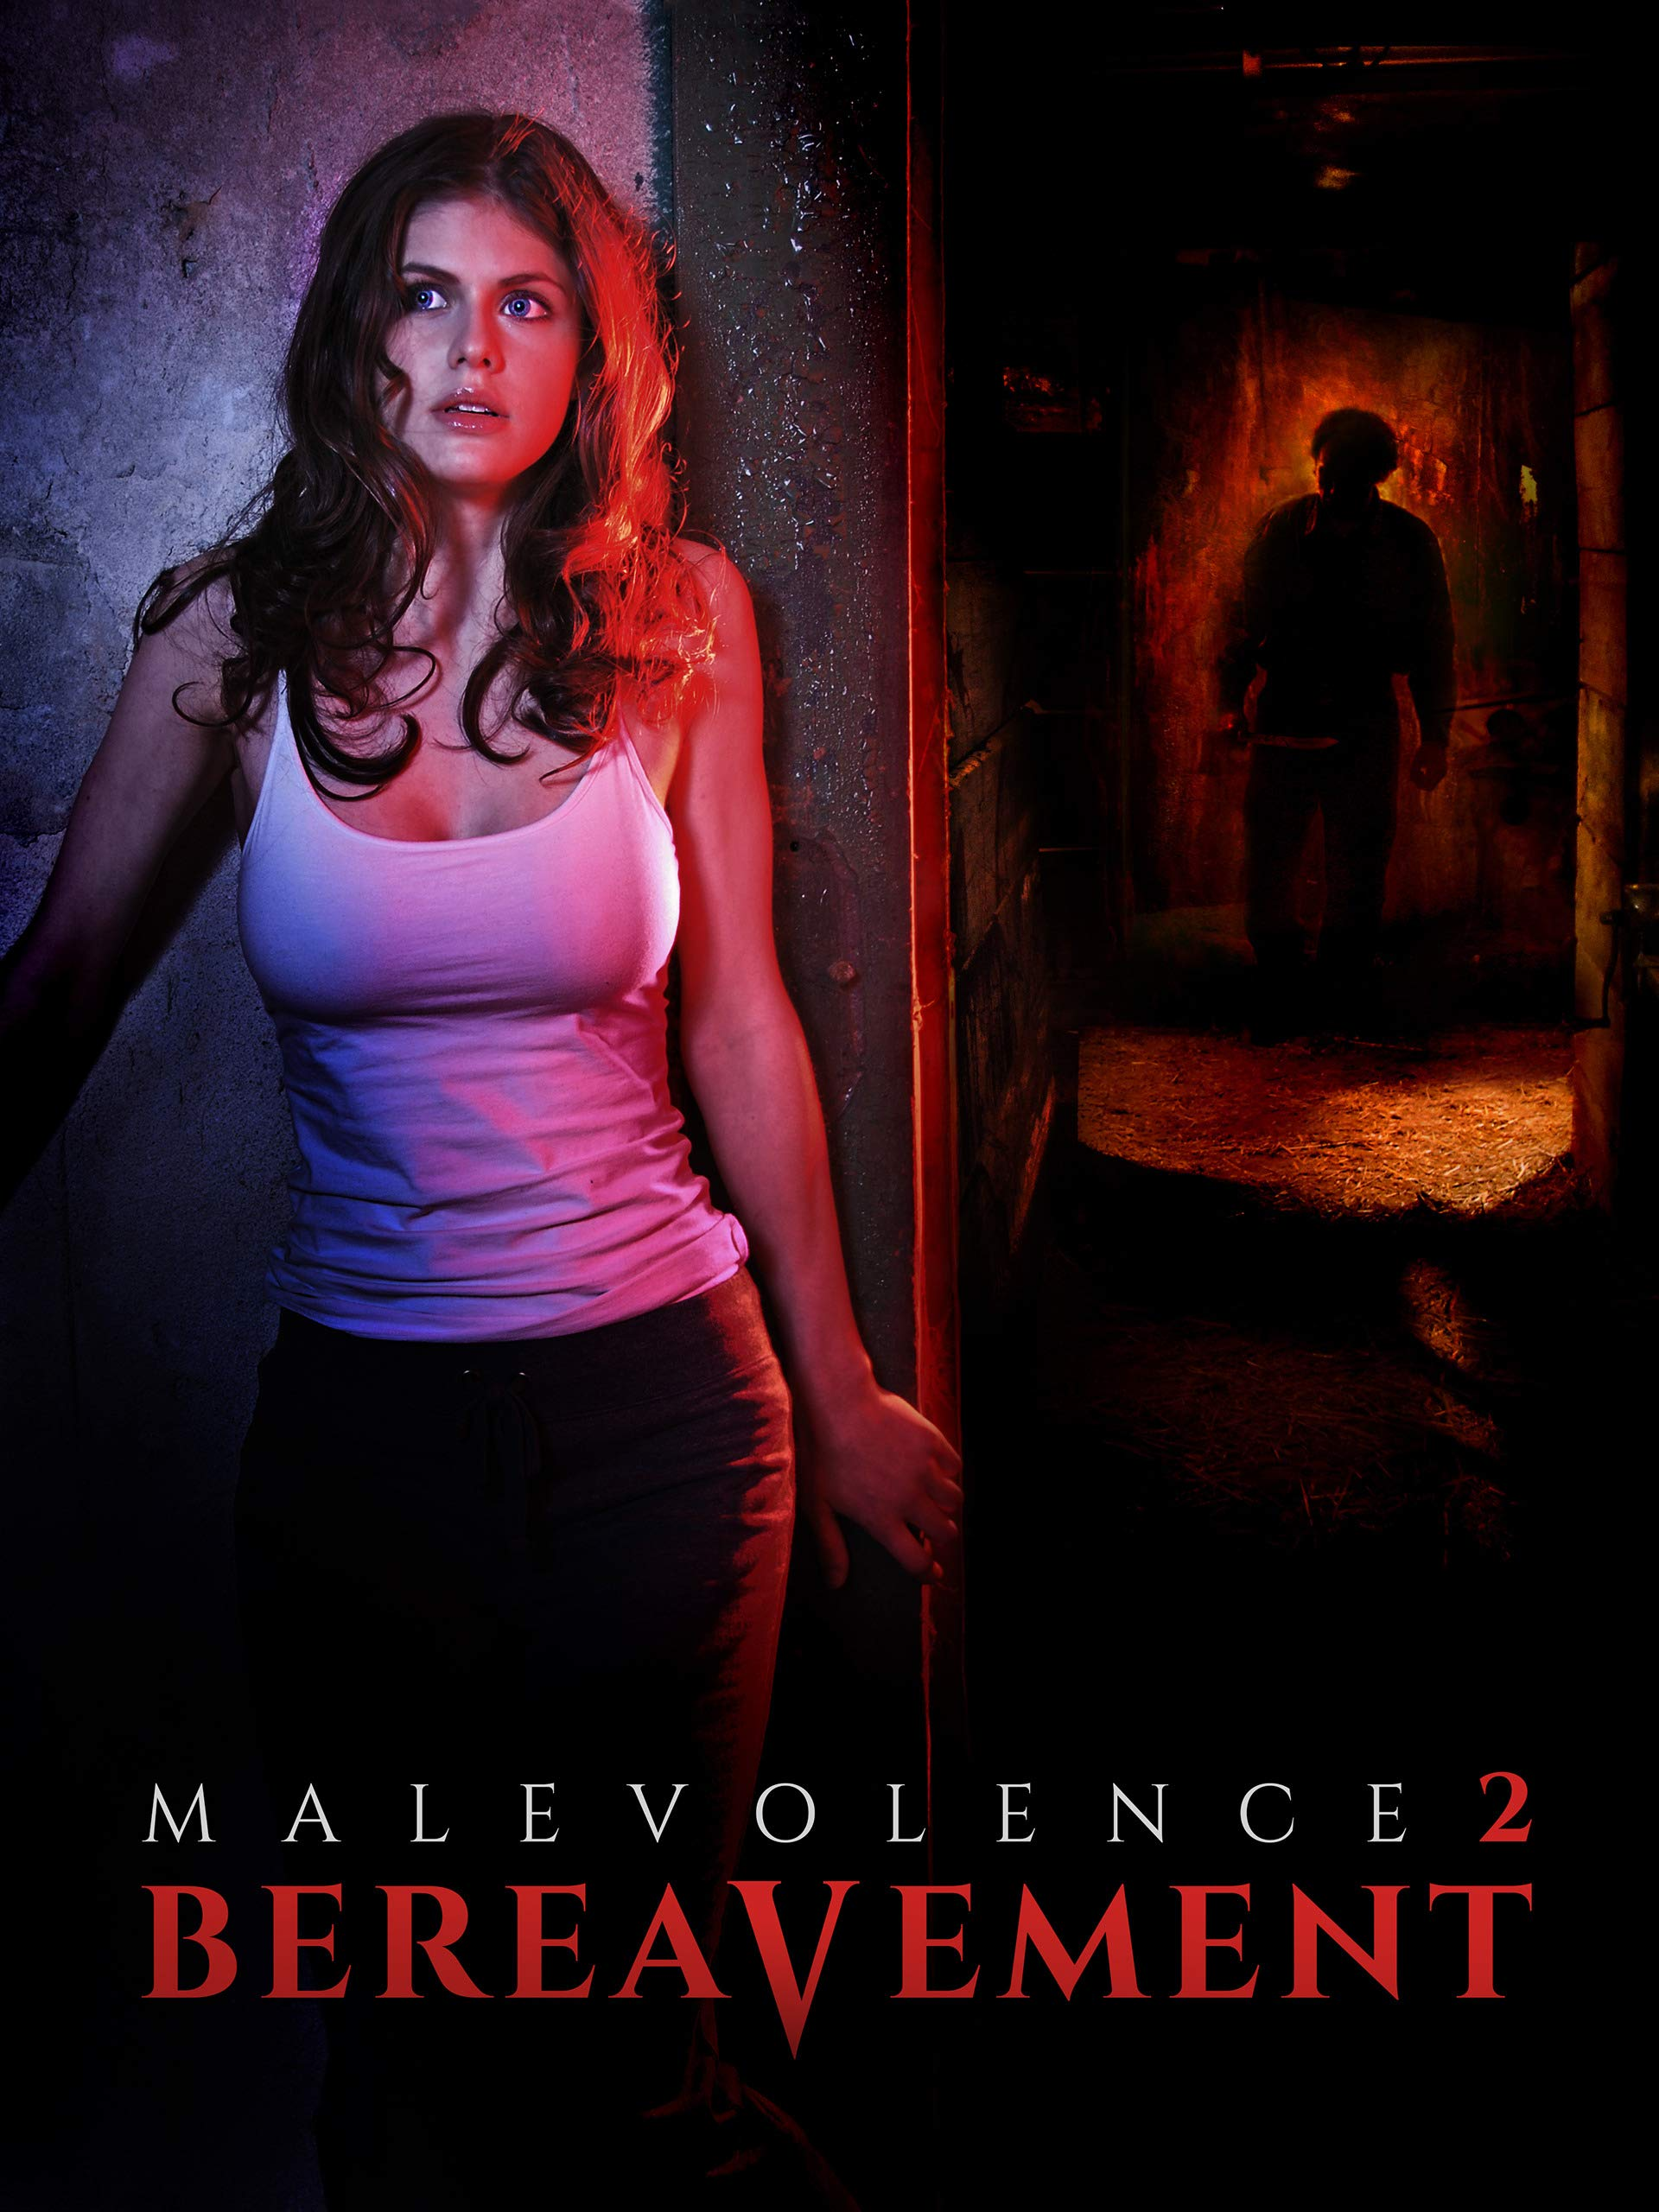 Malevolence 2: Bereavement